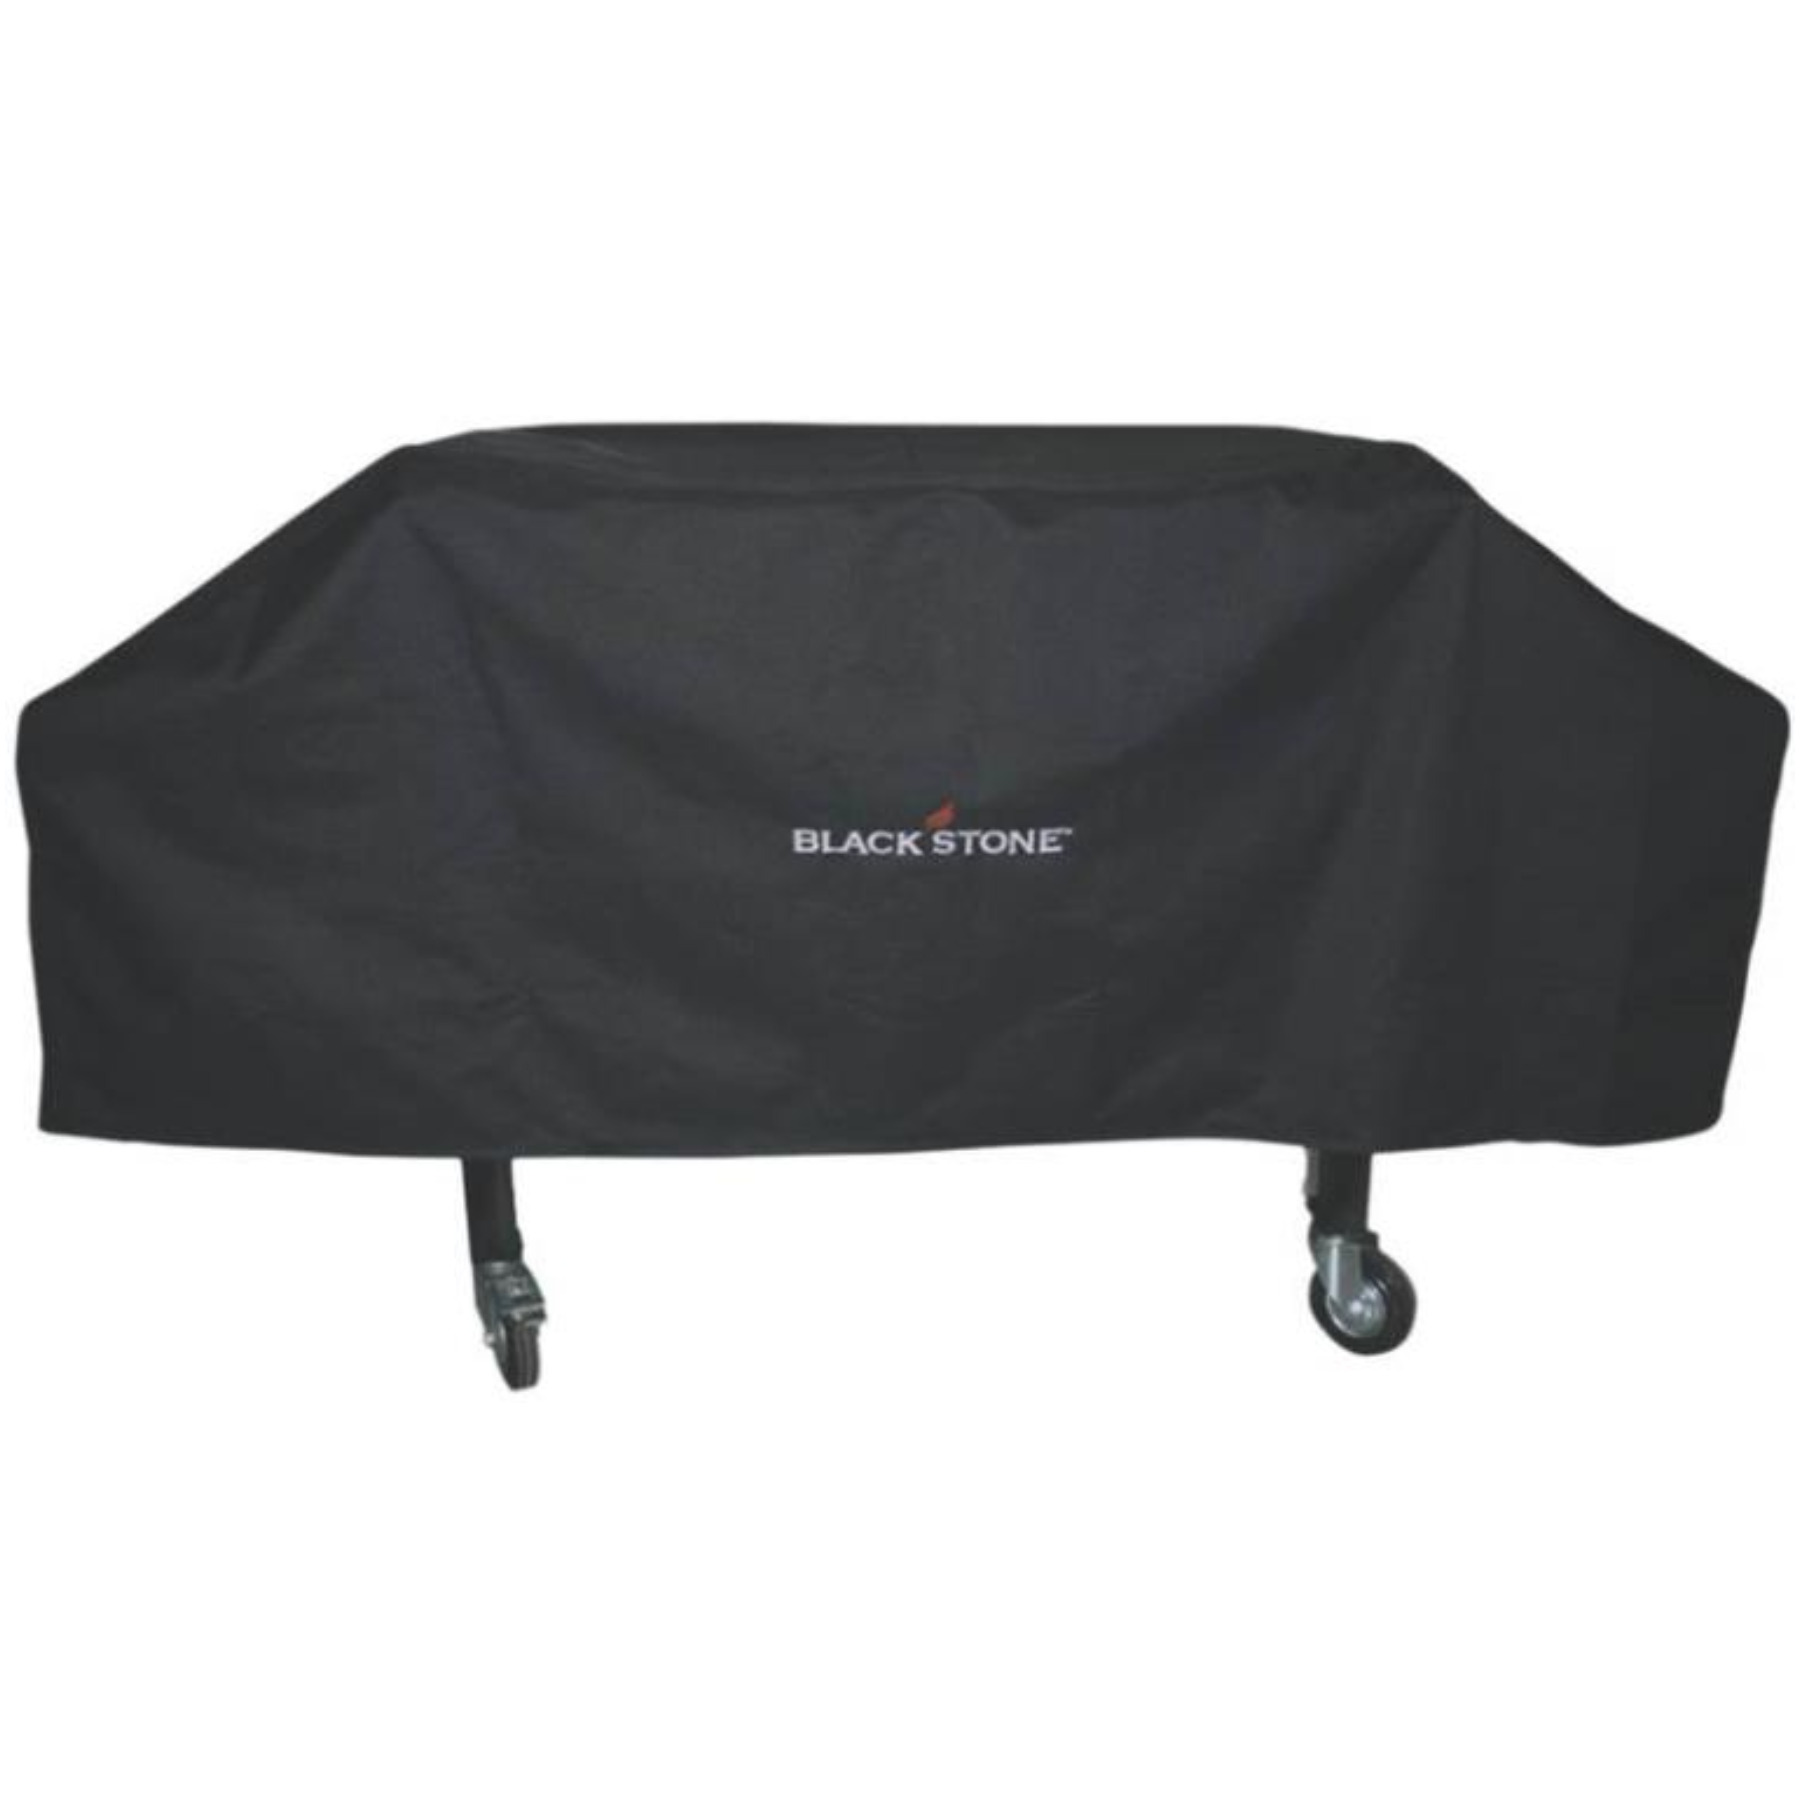 Blackstone 1528 Heavy Duty Grill Cover, For Use With Blackstone 36 in Griddle Cooking Station, Polyester